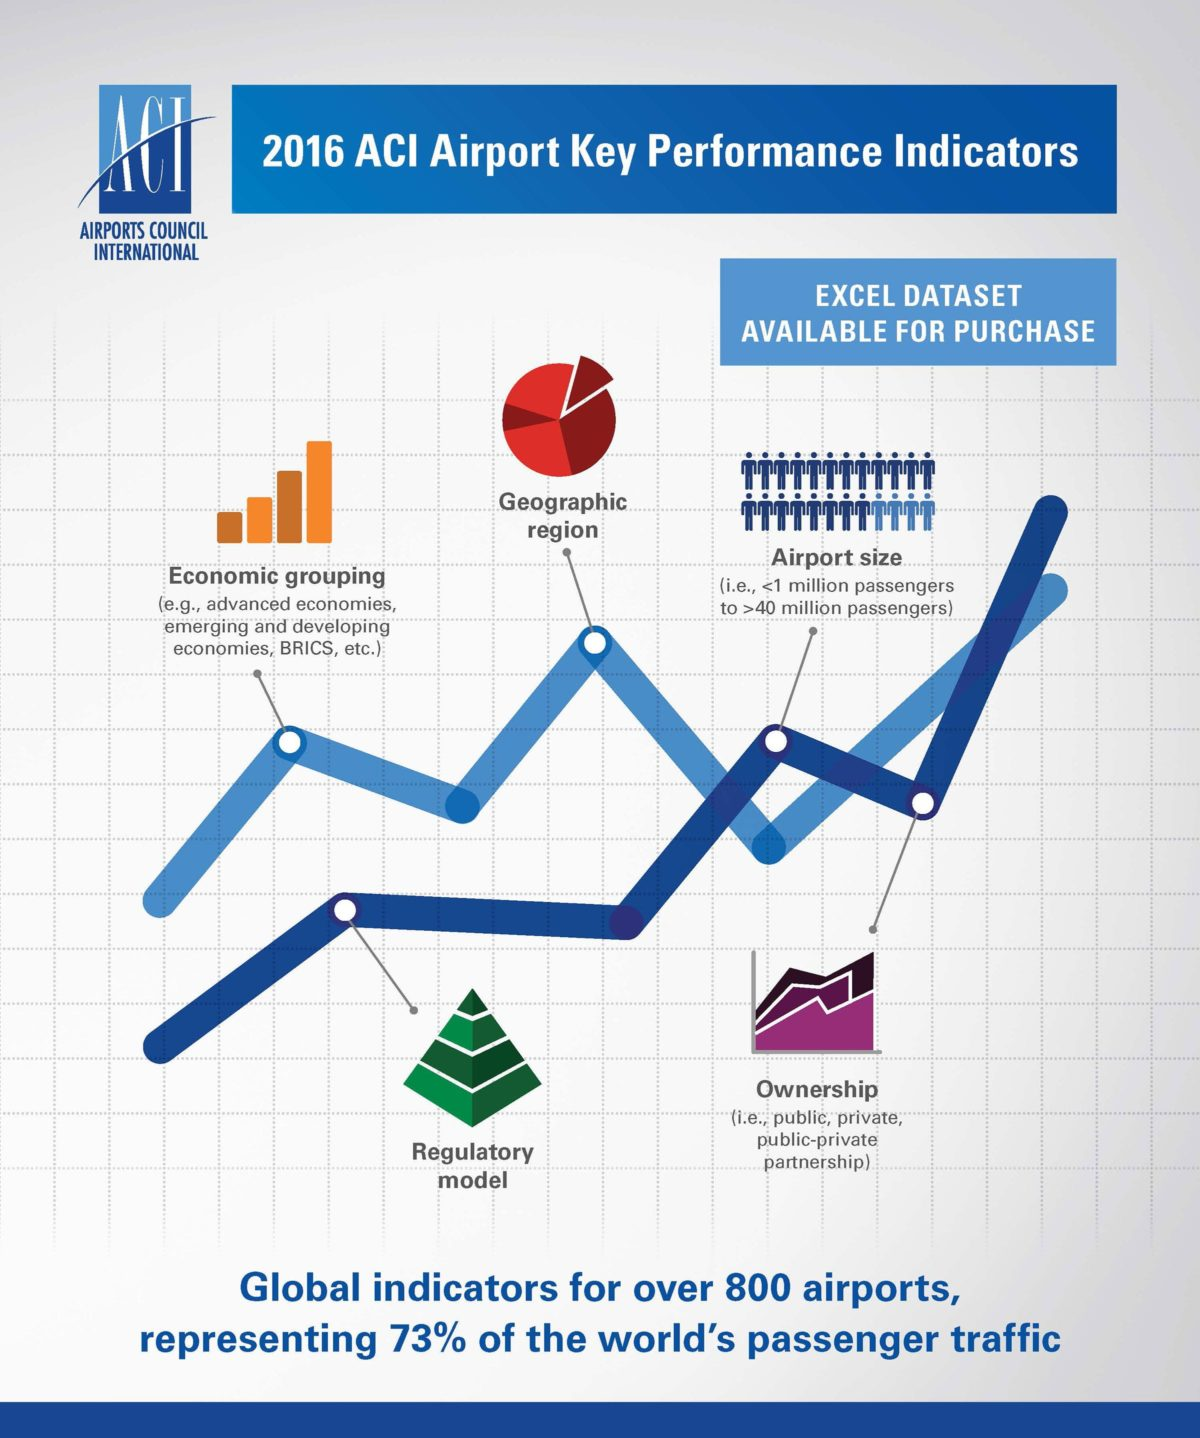 2016 ACI Airport Key Performance Indicators